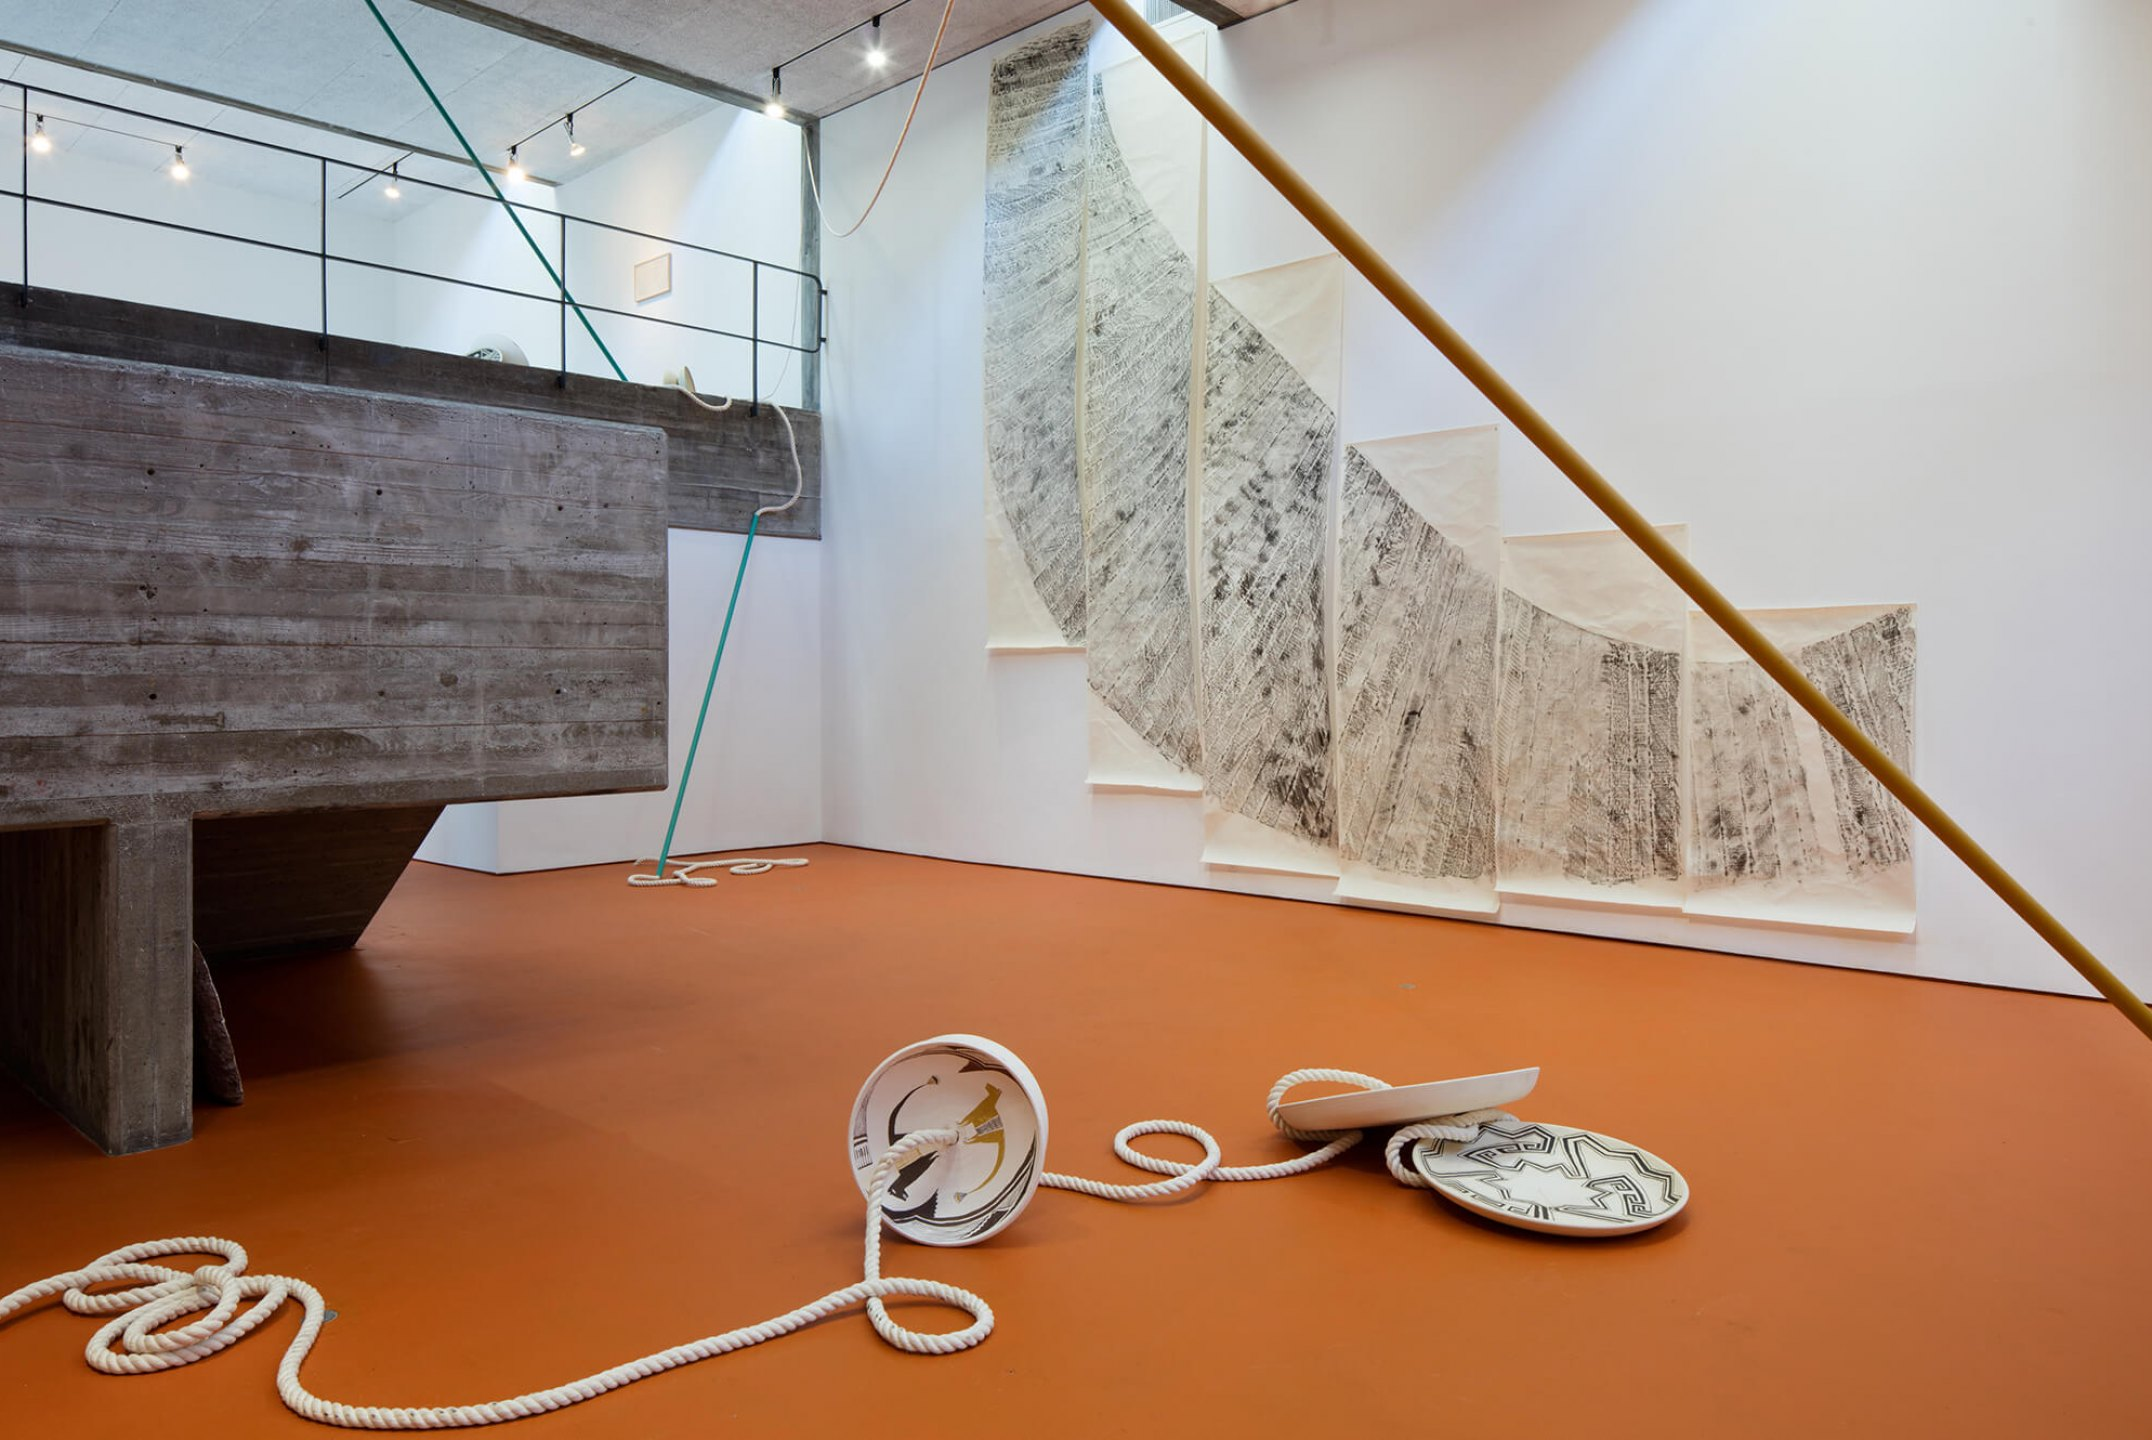 Mariana Castillo Deball, <em>Feathered Changes, Serpent Disappearances,</em> 2016, San Francisco Art Institute, San Francisco - Mendes Wood DM